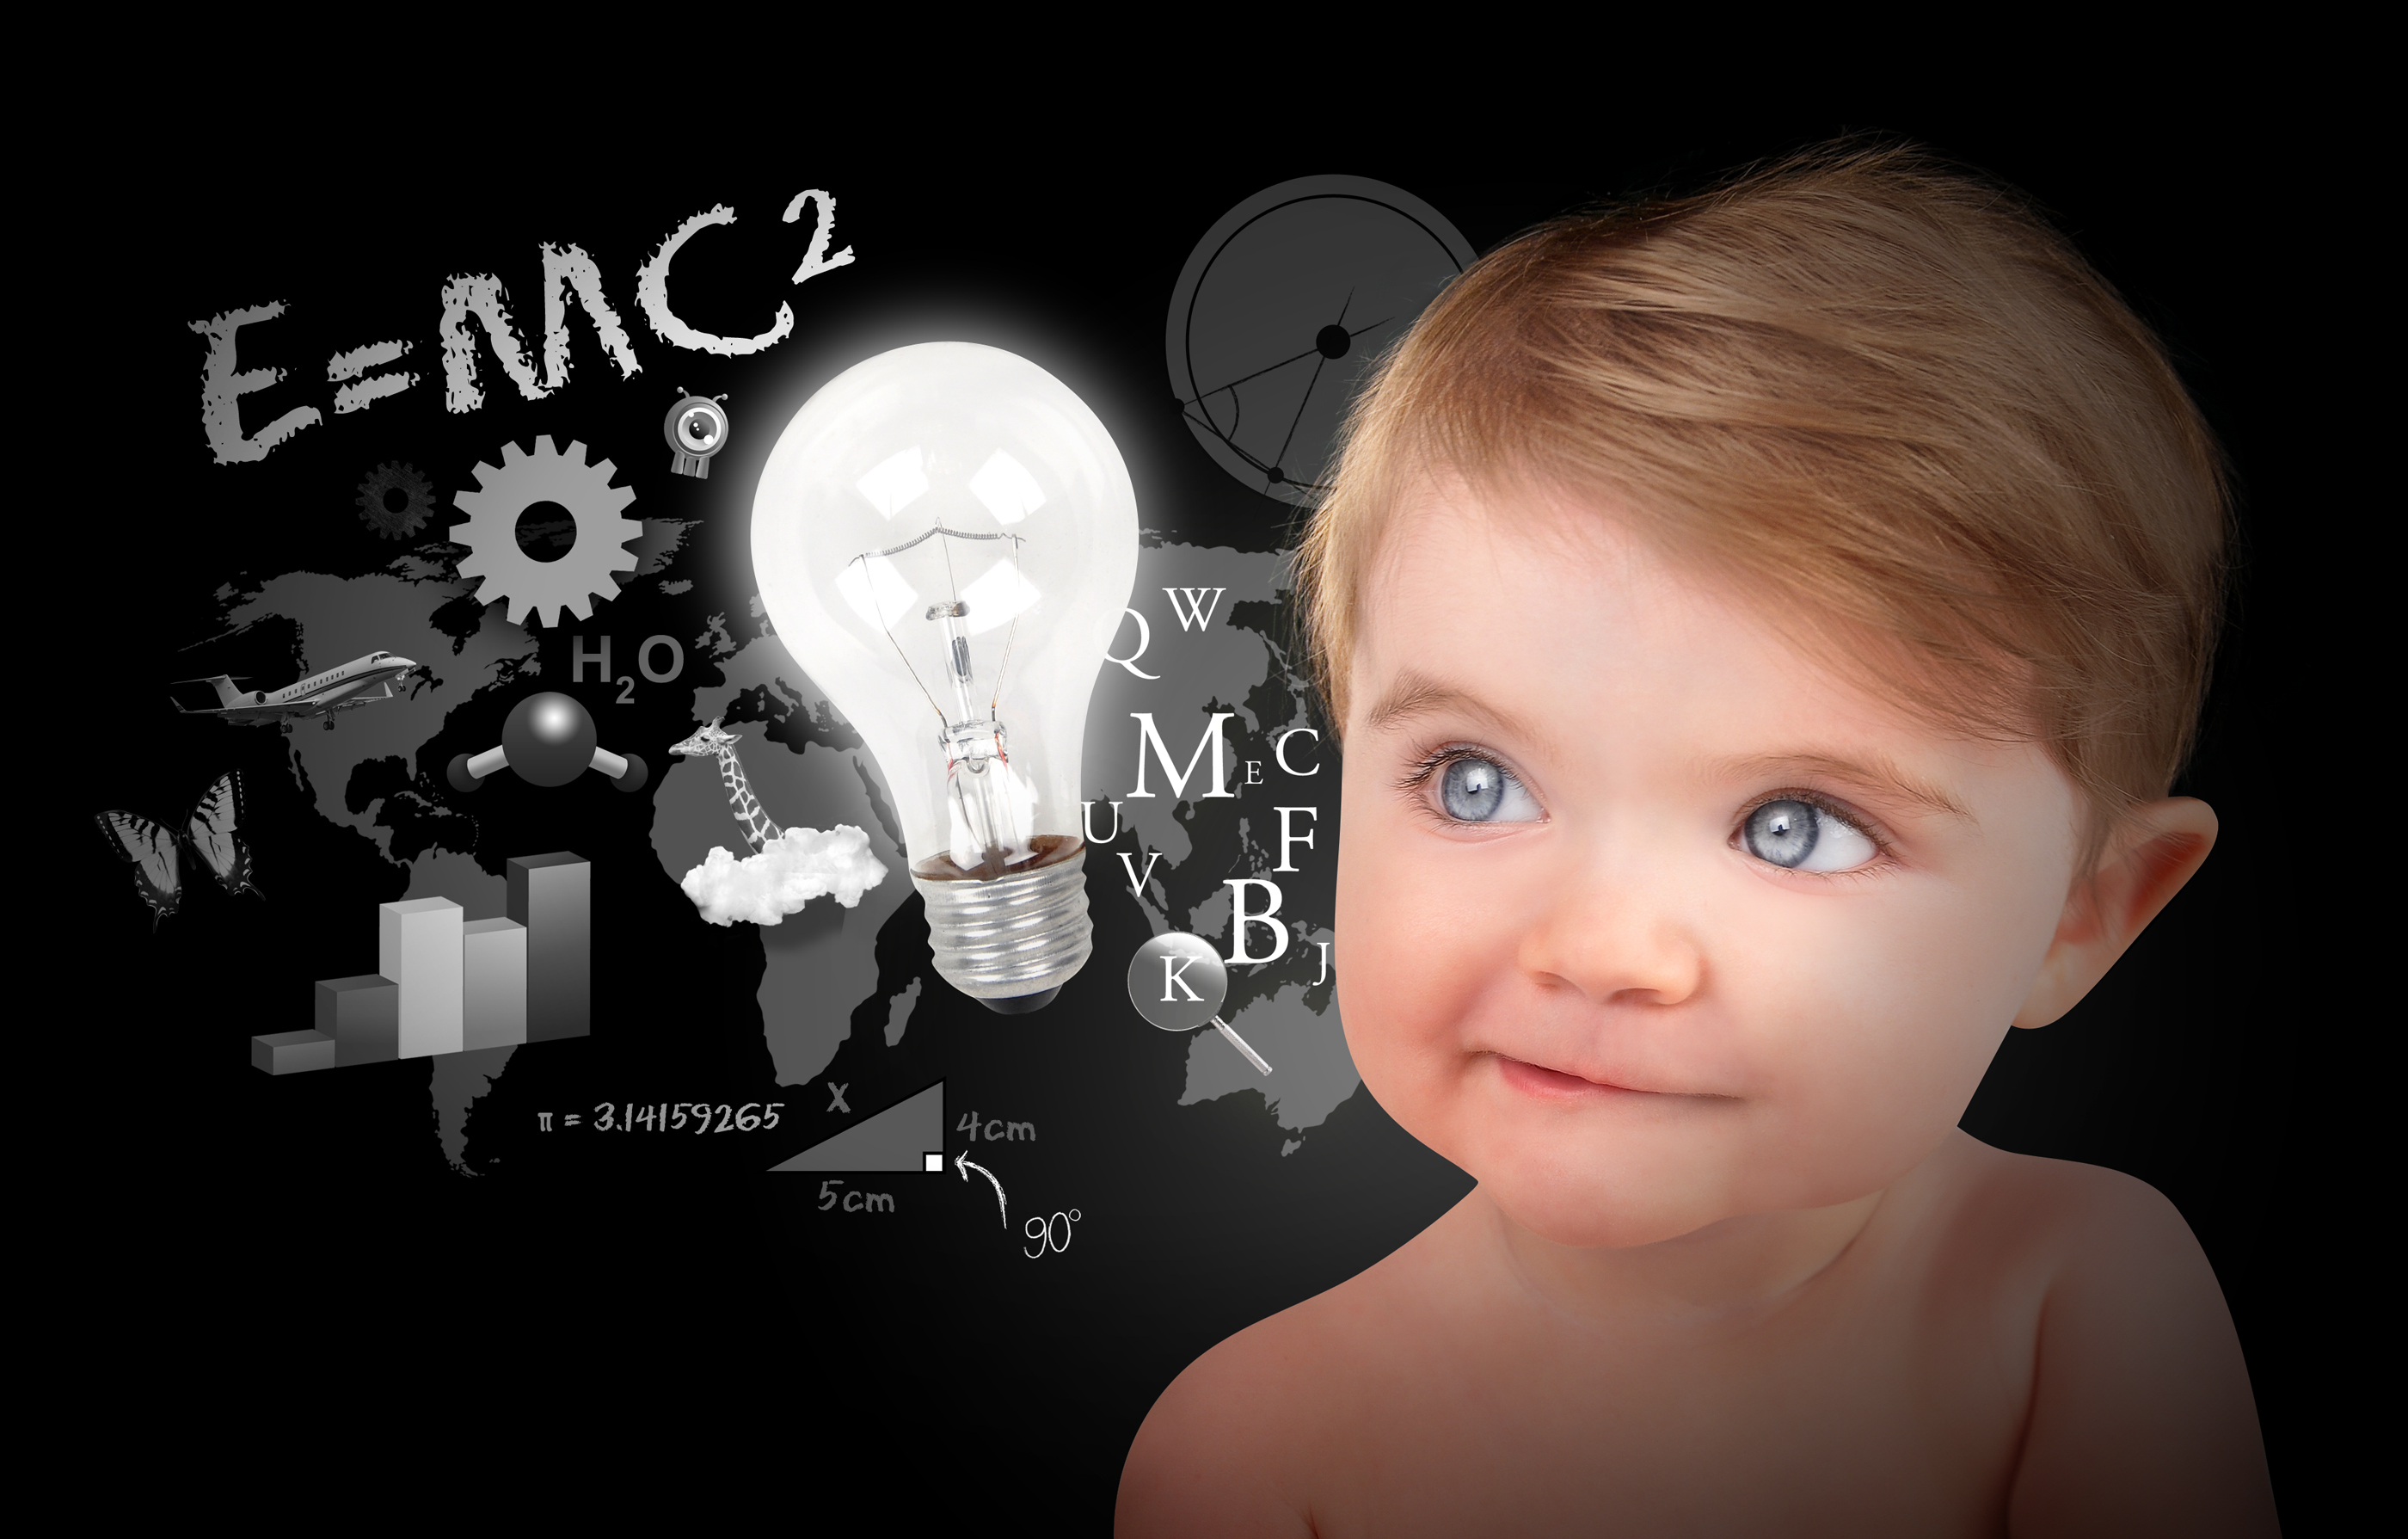 What Are Normal Speech Development Milestones and How Do I Know If My Child Is Meeting Them?